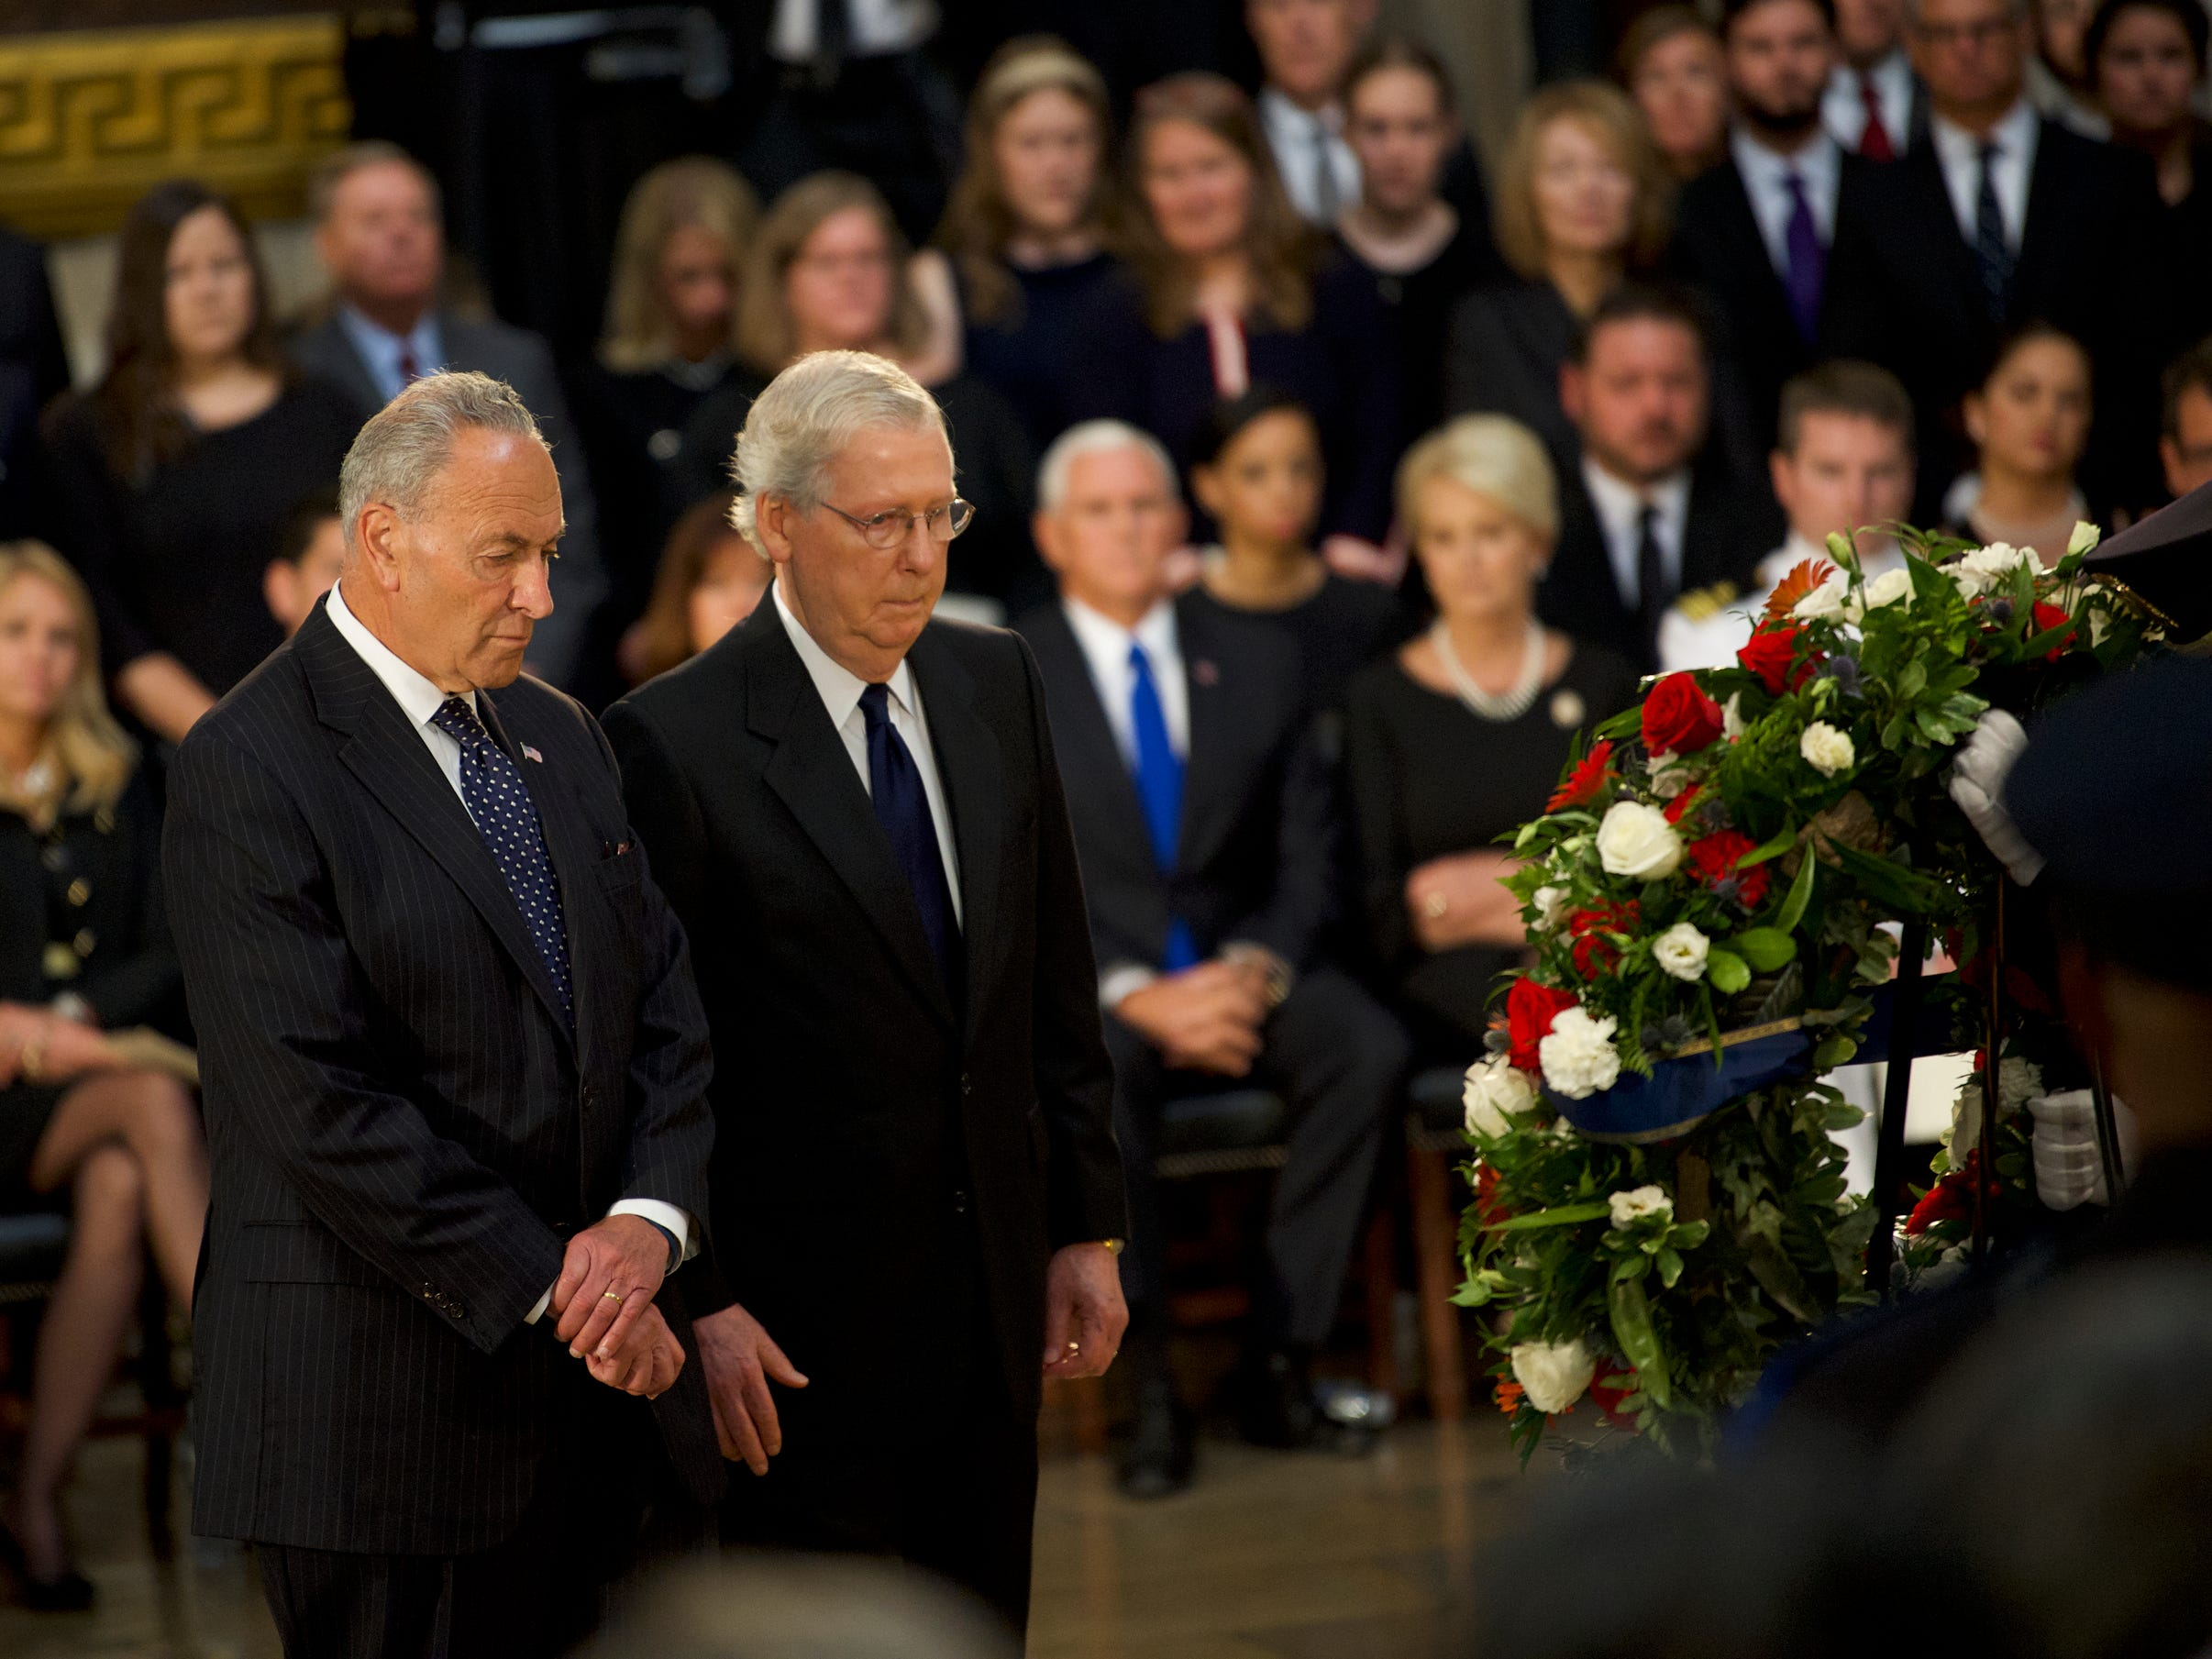 8/31/18 11:17:42 AM -- Washington, DC, U.S.A  -- Senators Chuck Schumer and Mitch McConnell present a wreath as the body of John McCain lies in state at the U.S. Capitol in Washington on Aug. 31, 2018 in Washington. Sen. McCain died on Aug. 25. --    Photo by Jasper Colt, USA TODAY Staff ORG XMIT:  JC 137436 McCain U.S. Capi 8/31/2018 (Via OlyDrop)